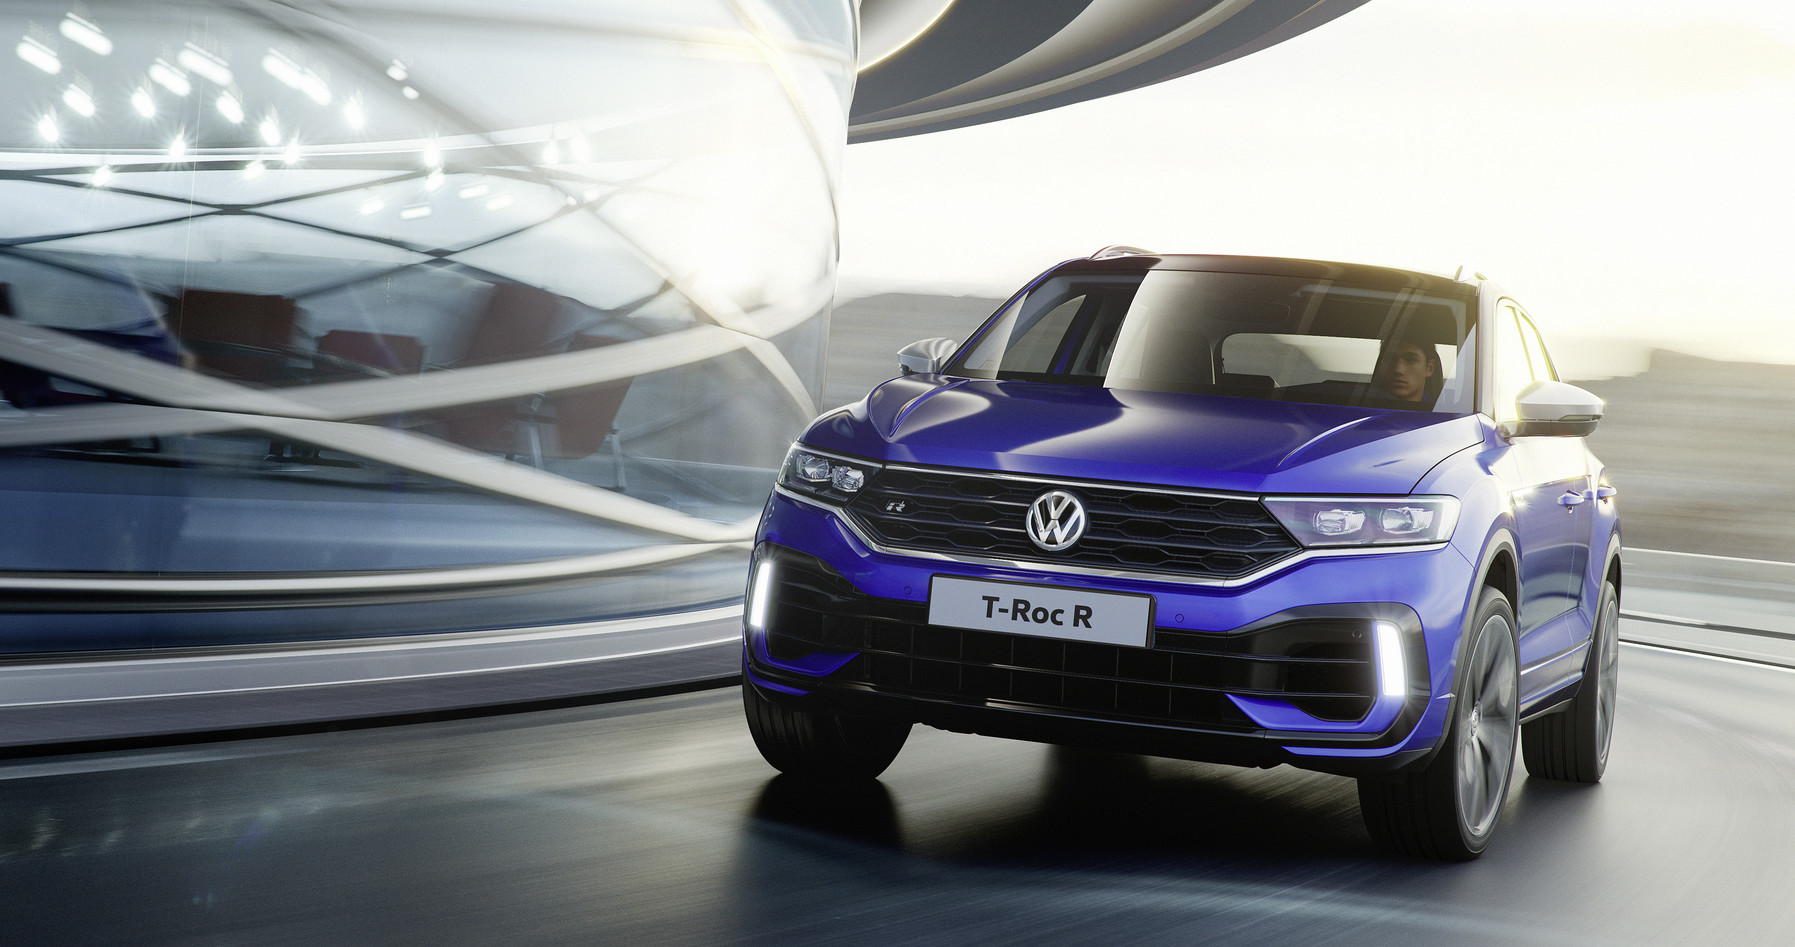 suv do golf r vw t roc r utilit rio de 300 cv motor show. Black Bedroom Furniture Sets. Home Design Ideas